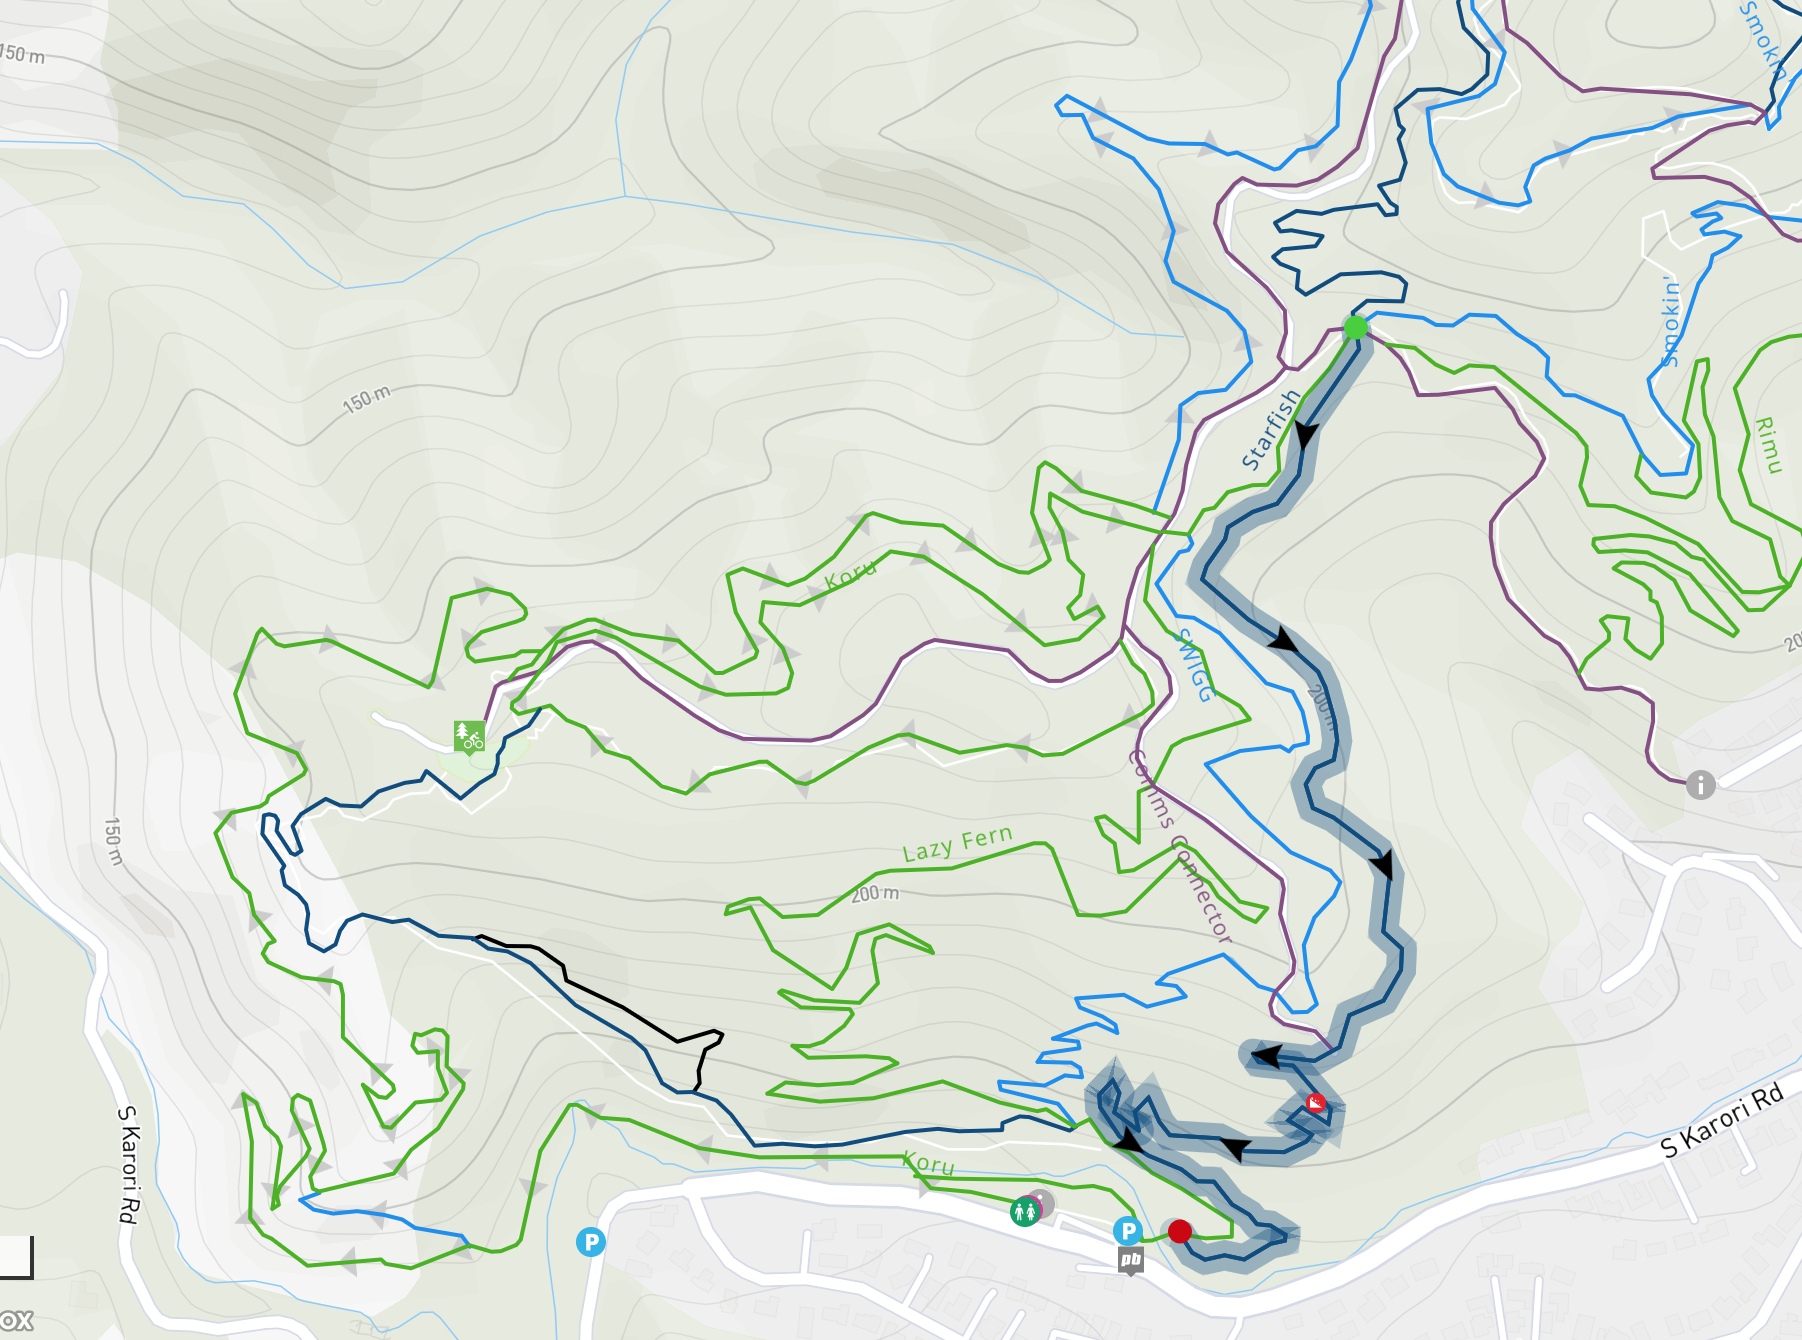 Trailforks map showing Starfish line